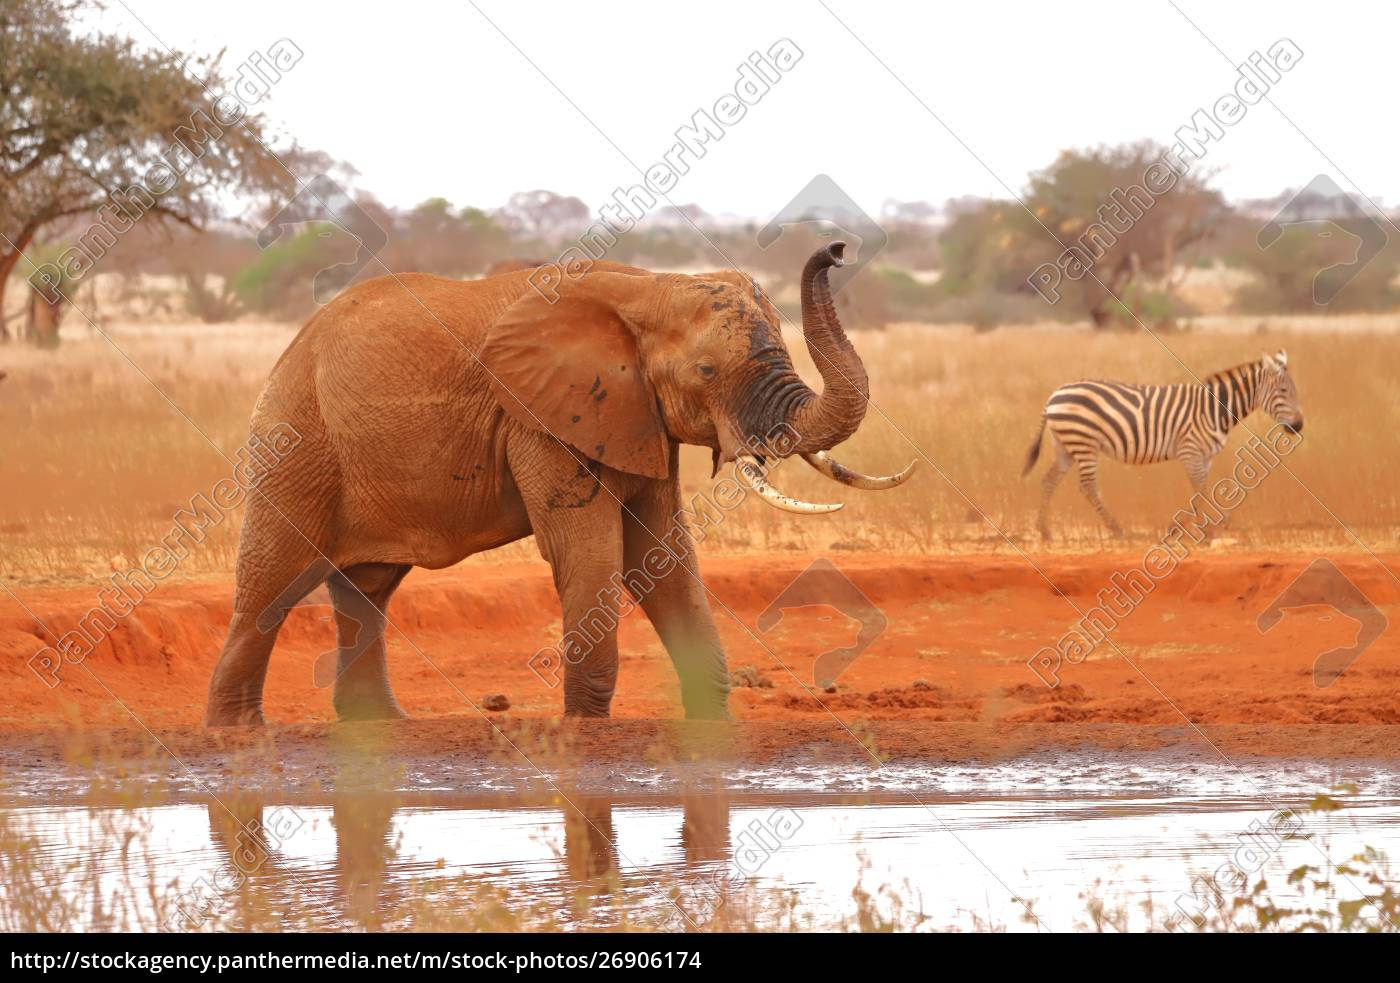 an, elephant, and, a, zebra, at - 26906174